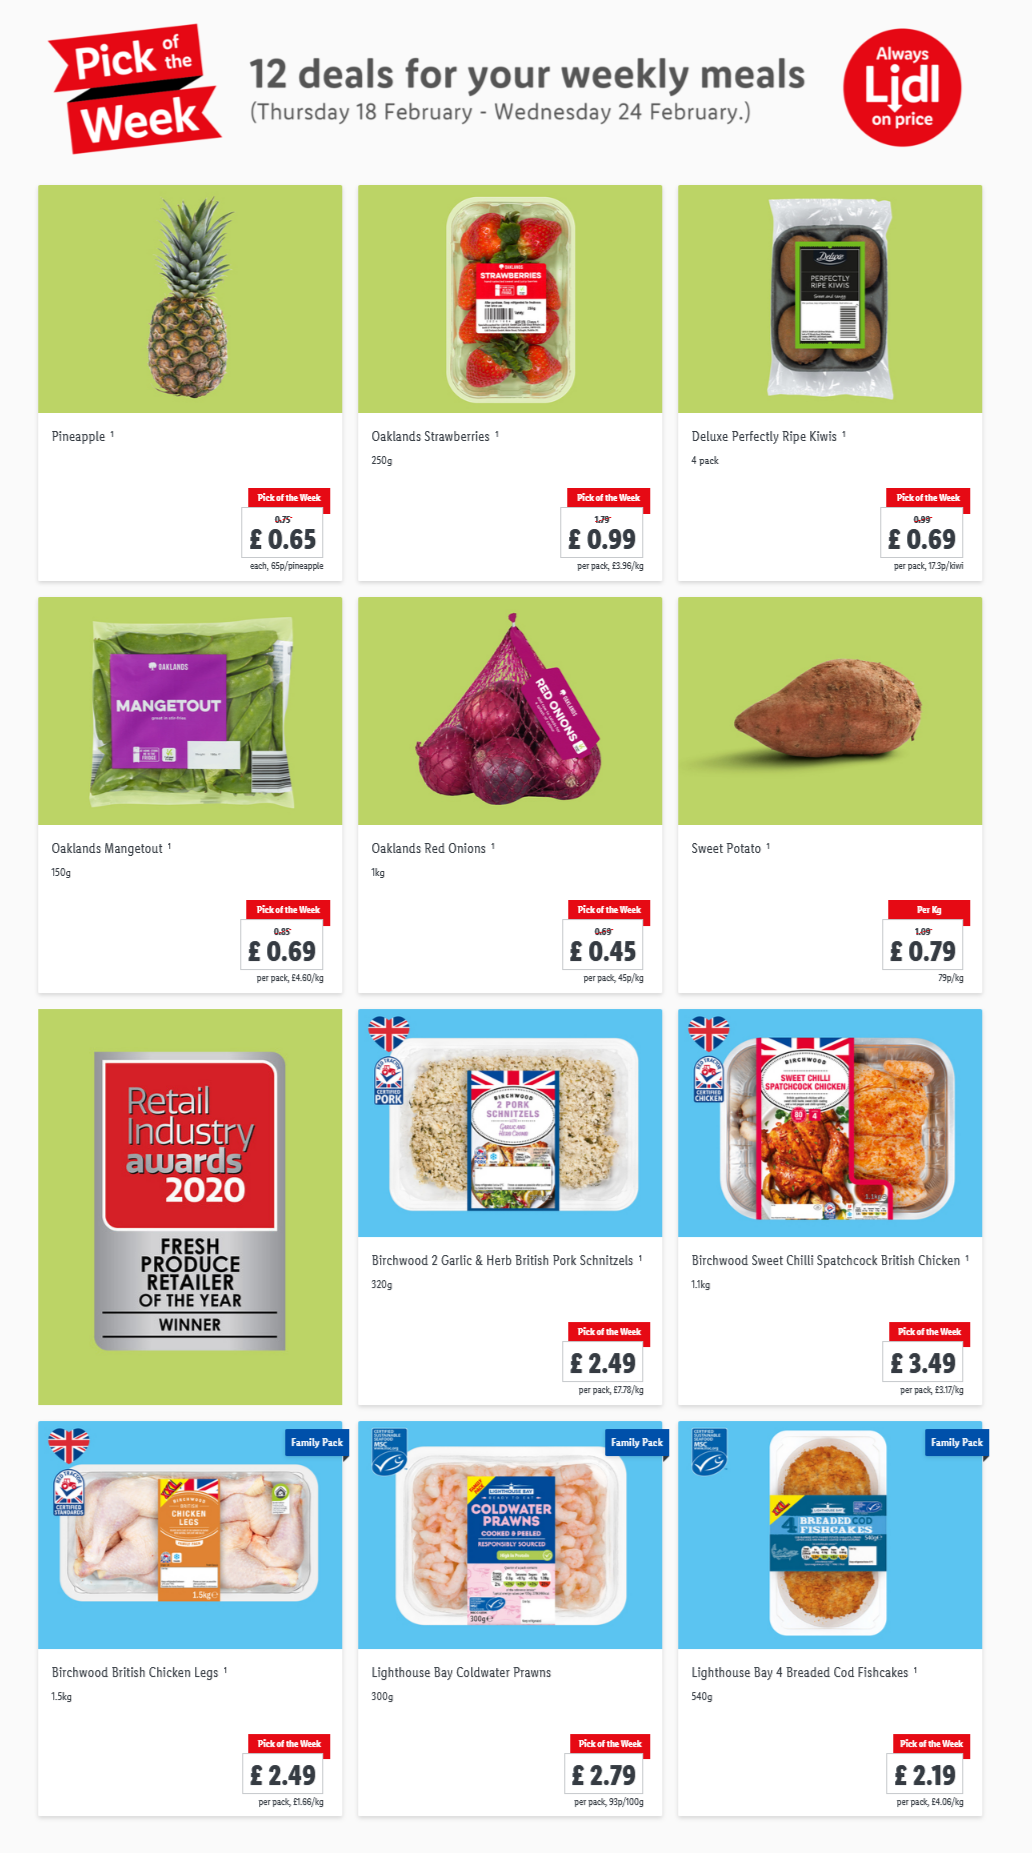 LIDL Pick of The Week 18th February - 24th February 2021 Next Week Preview